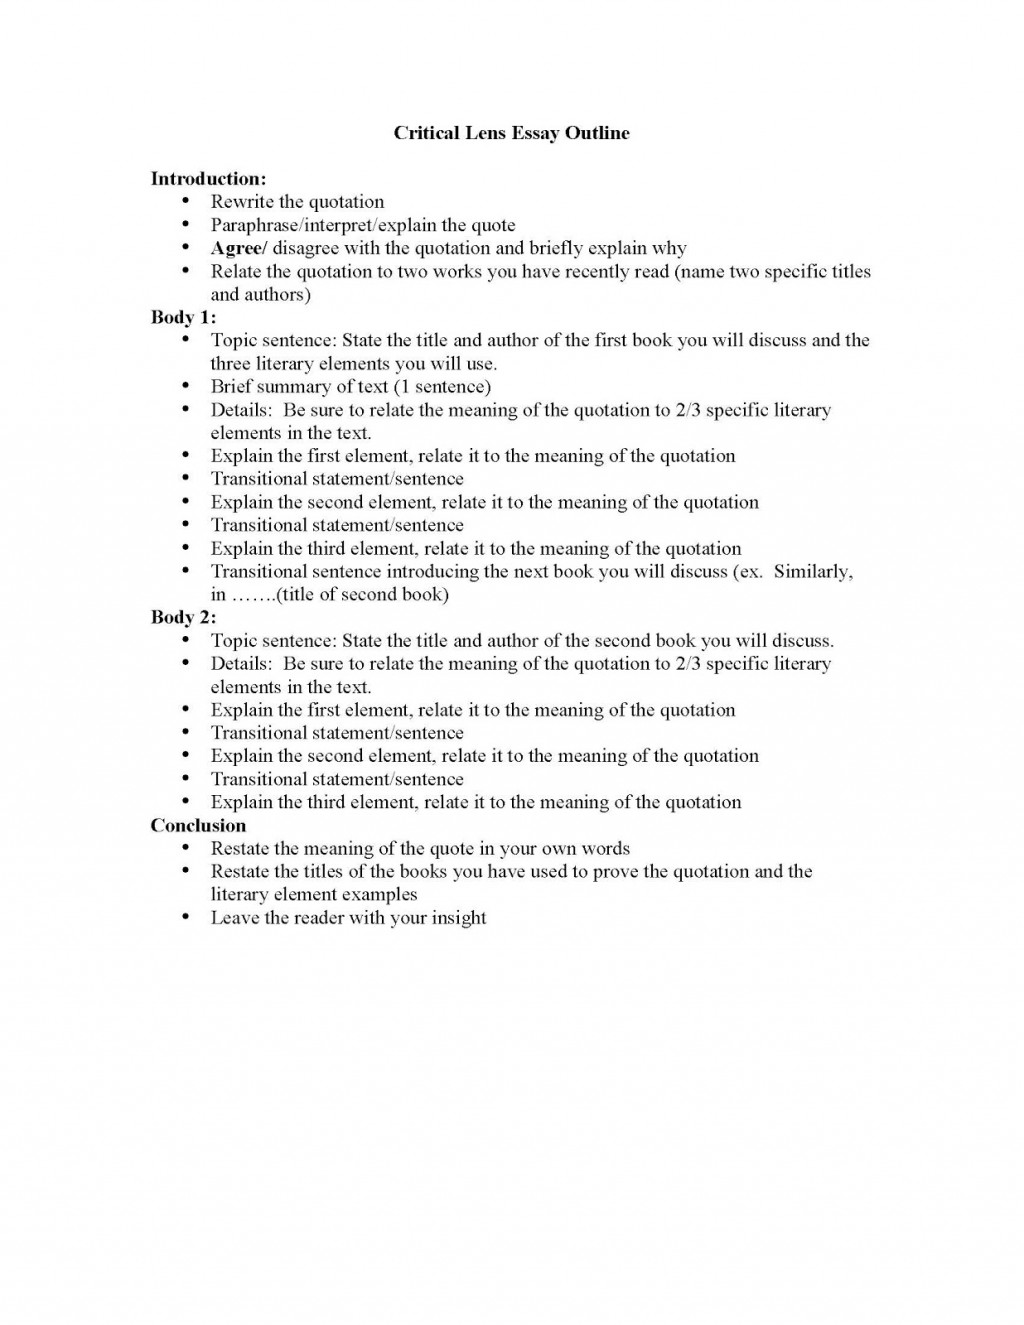 010 Essay Example Criticallensessayoutlineandliterayelements Page 1 Fascinating Outline About Immigration Tok Structure Definition Large